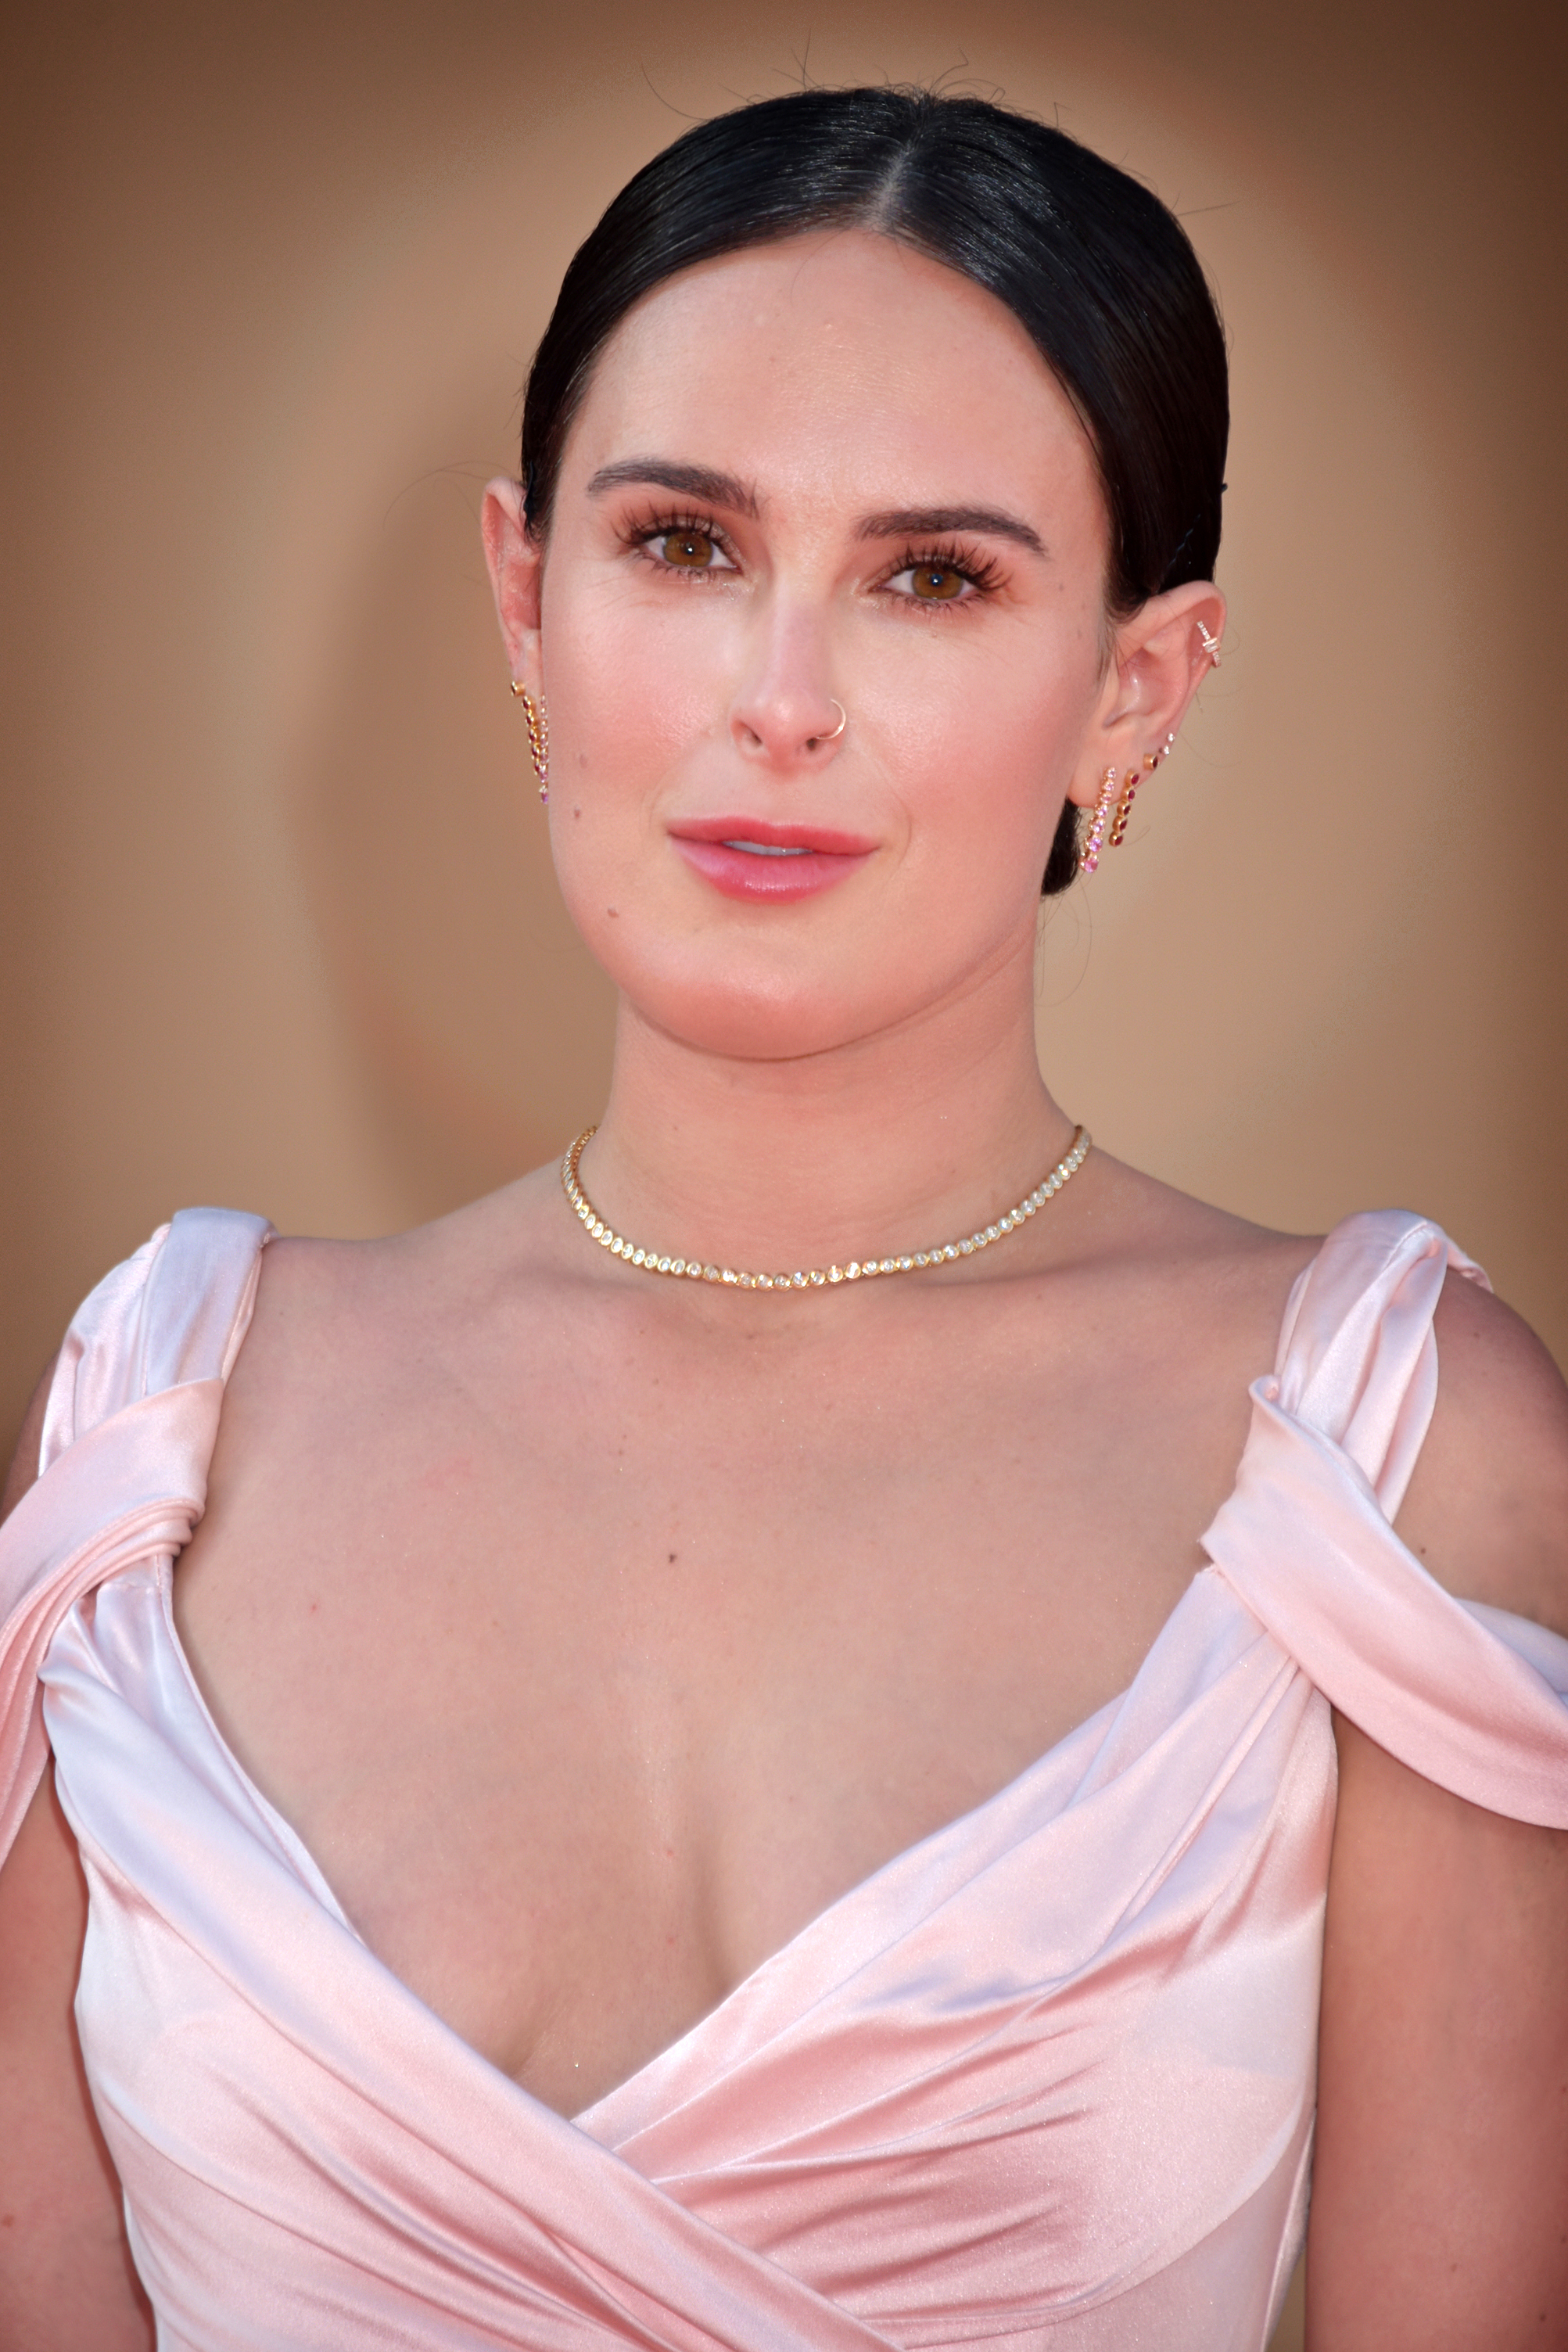 Rumer Willis - Wikipedia